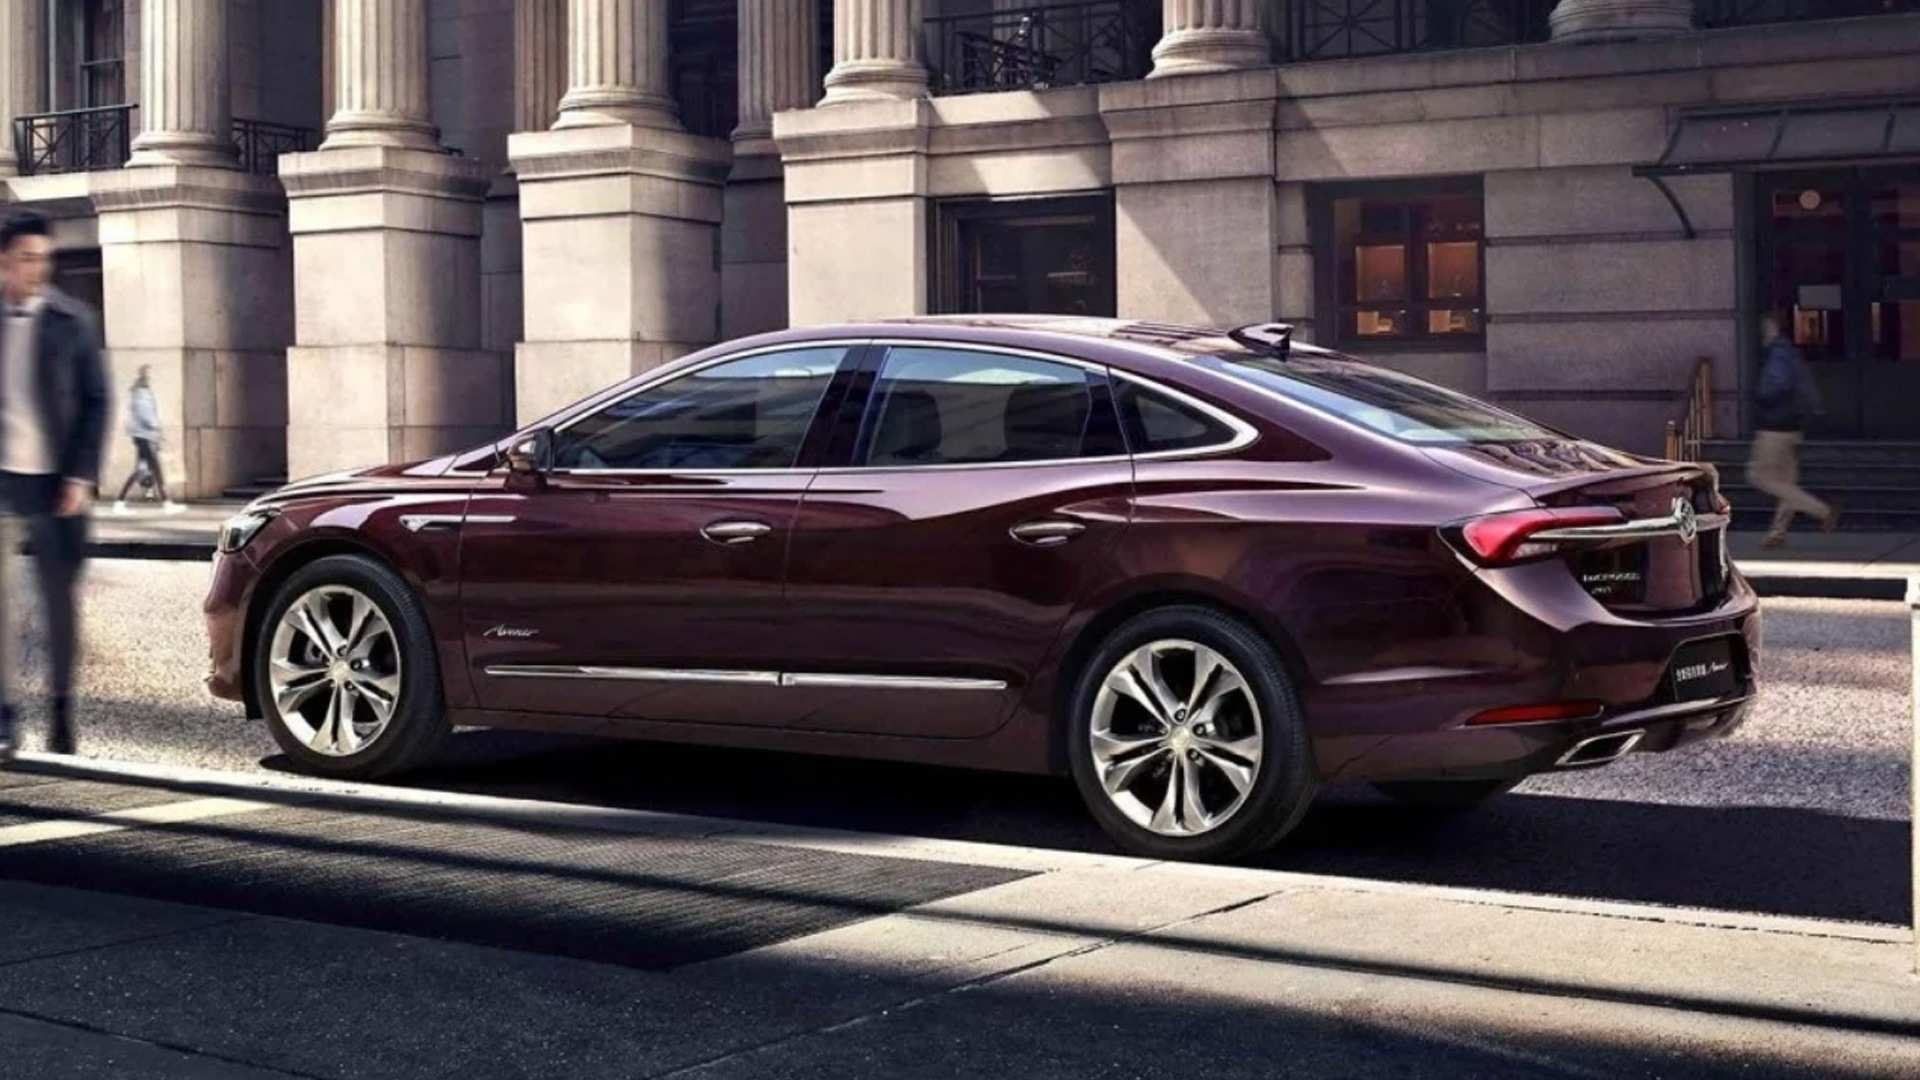 44 All New Buick Sedan 2020 Redesign And Review